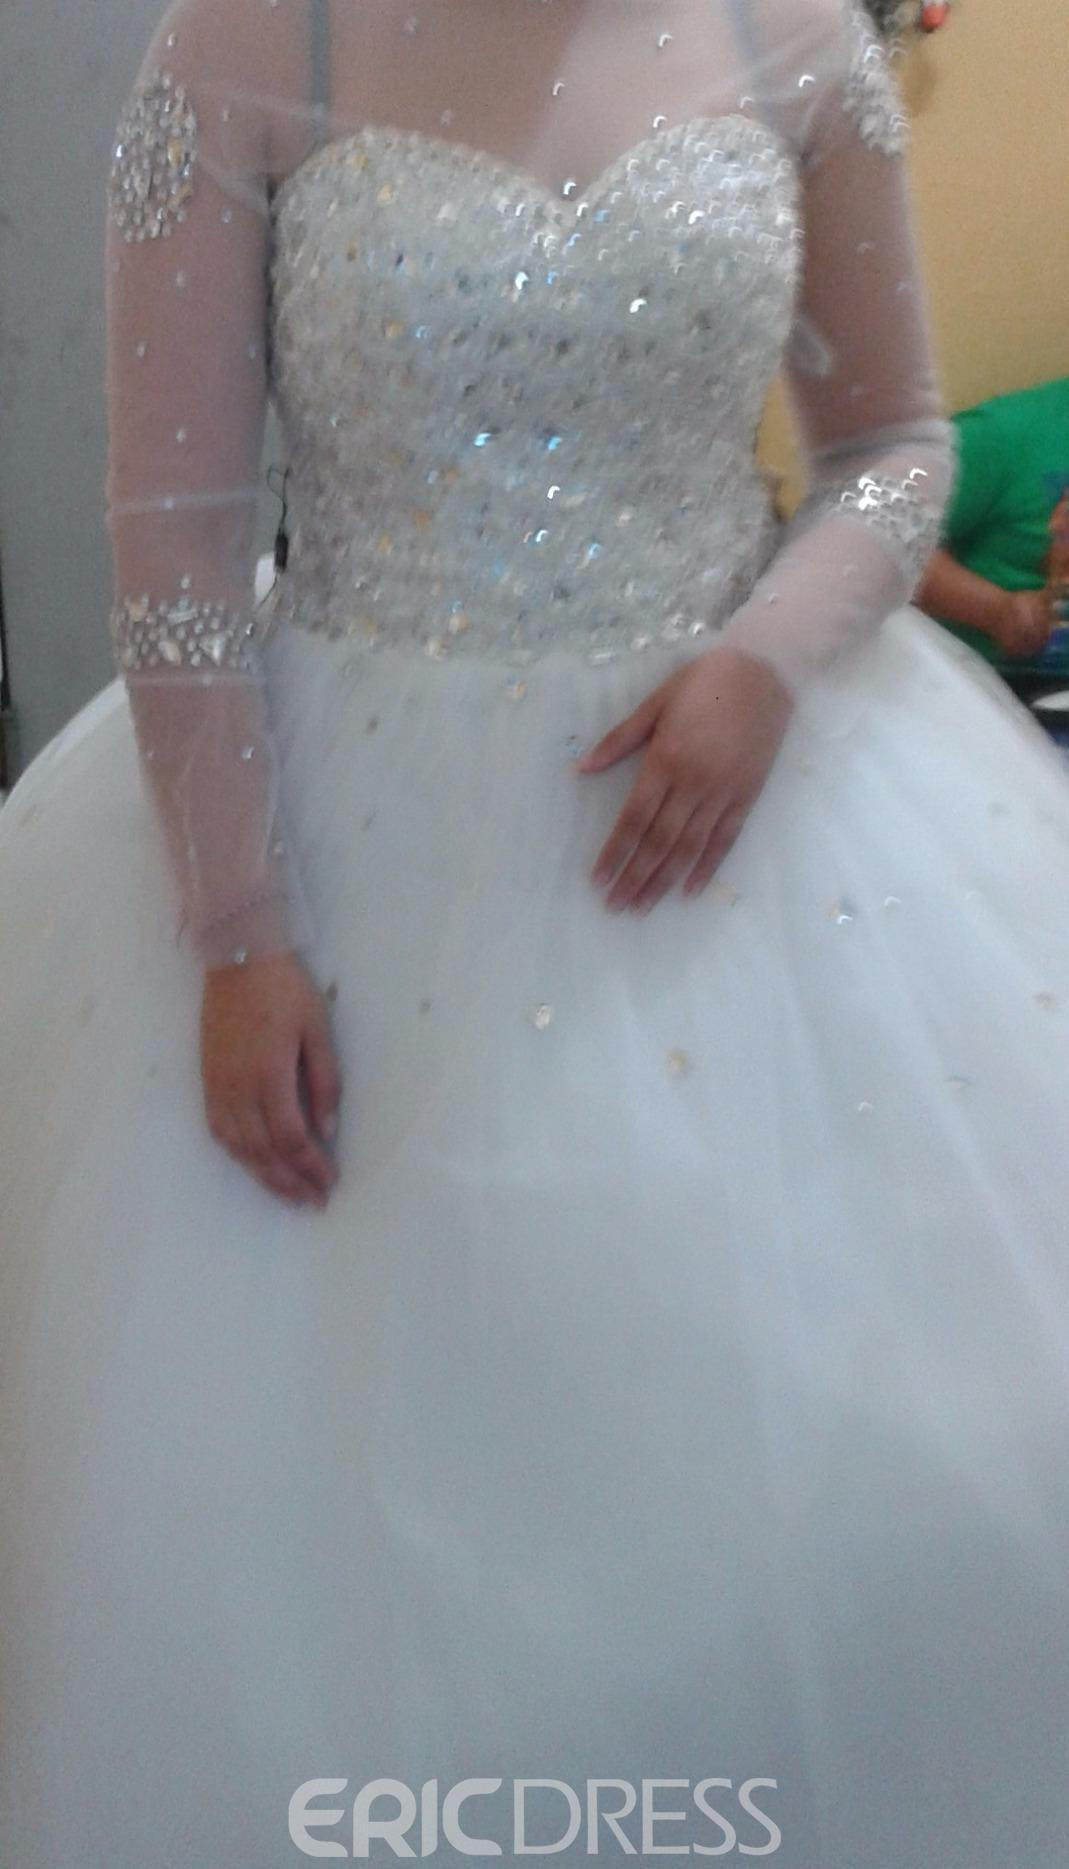 Ericdress Reviews-Ericdress Luxury Sweetheart Beading Ball Gown ...